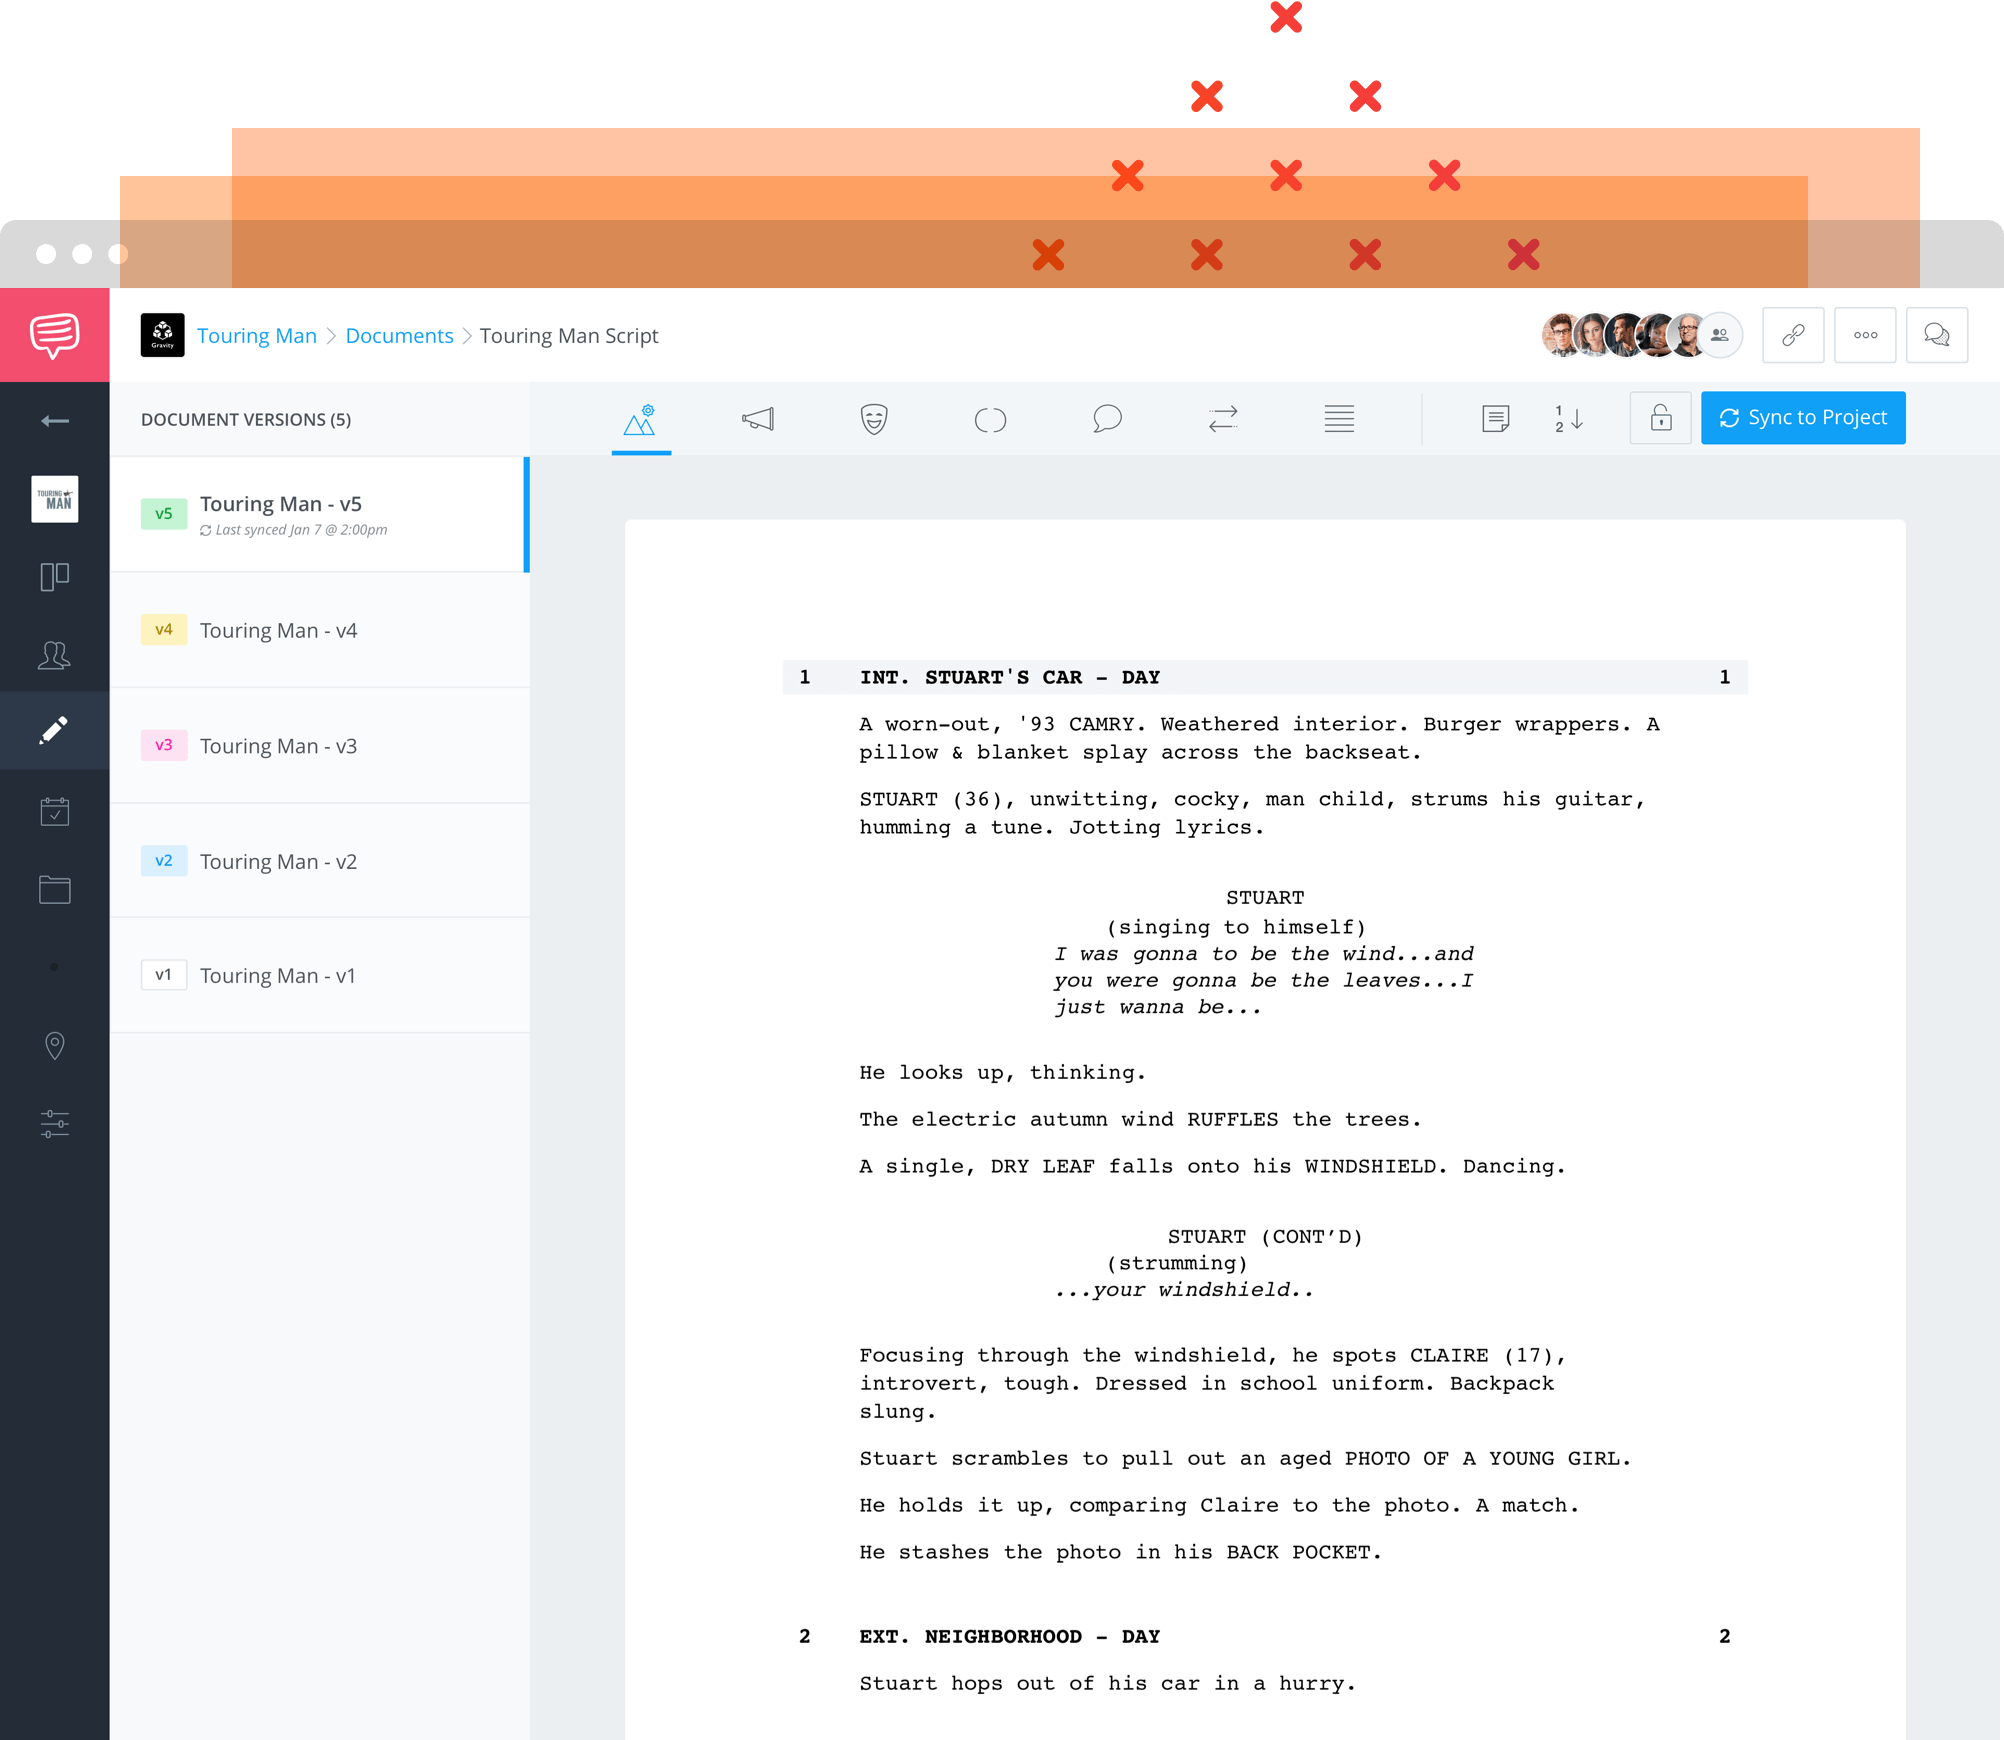 StudioBinder Free Screenwriting Software - Scriptwriting for Professional Screenplays